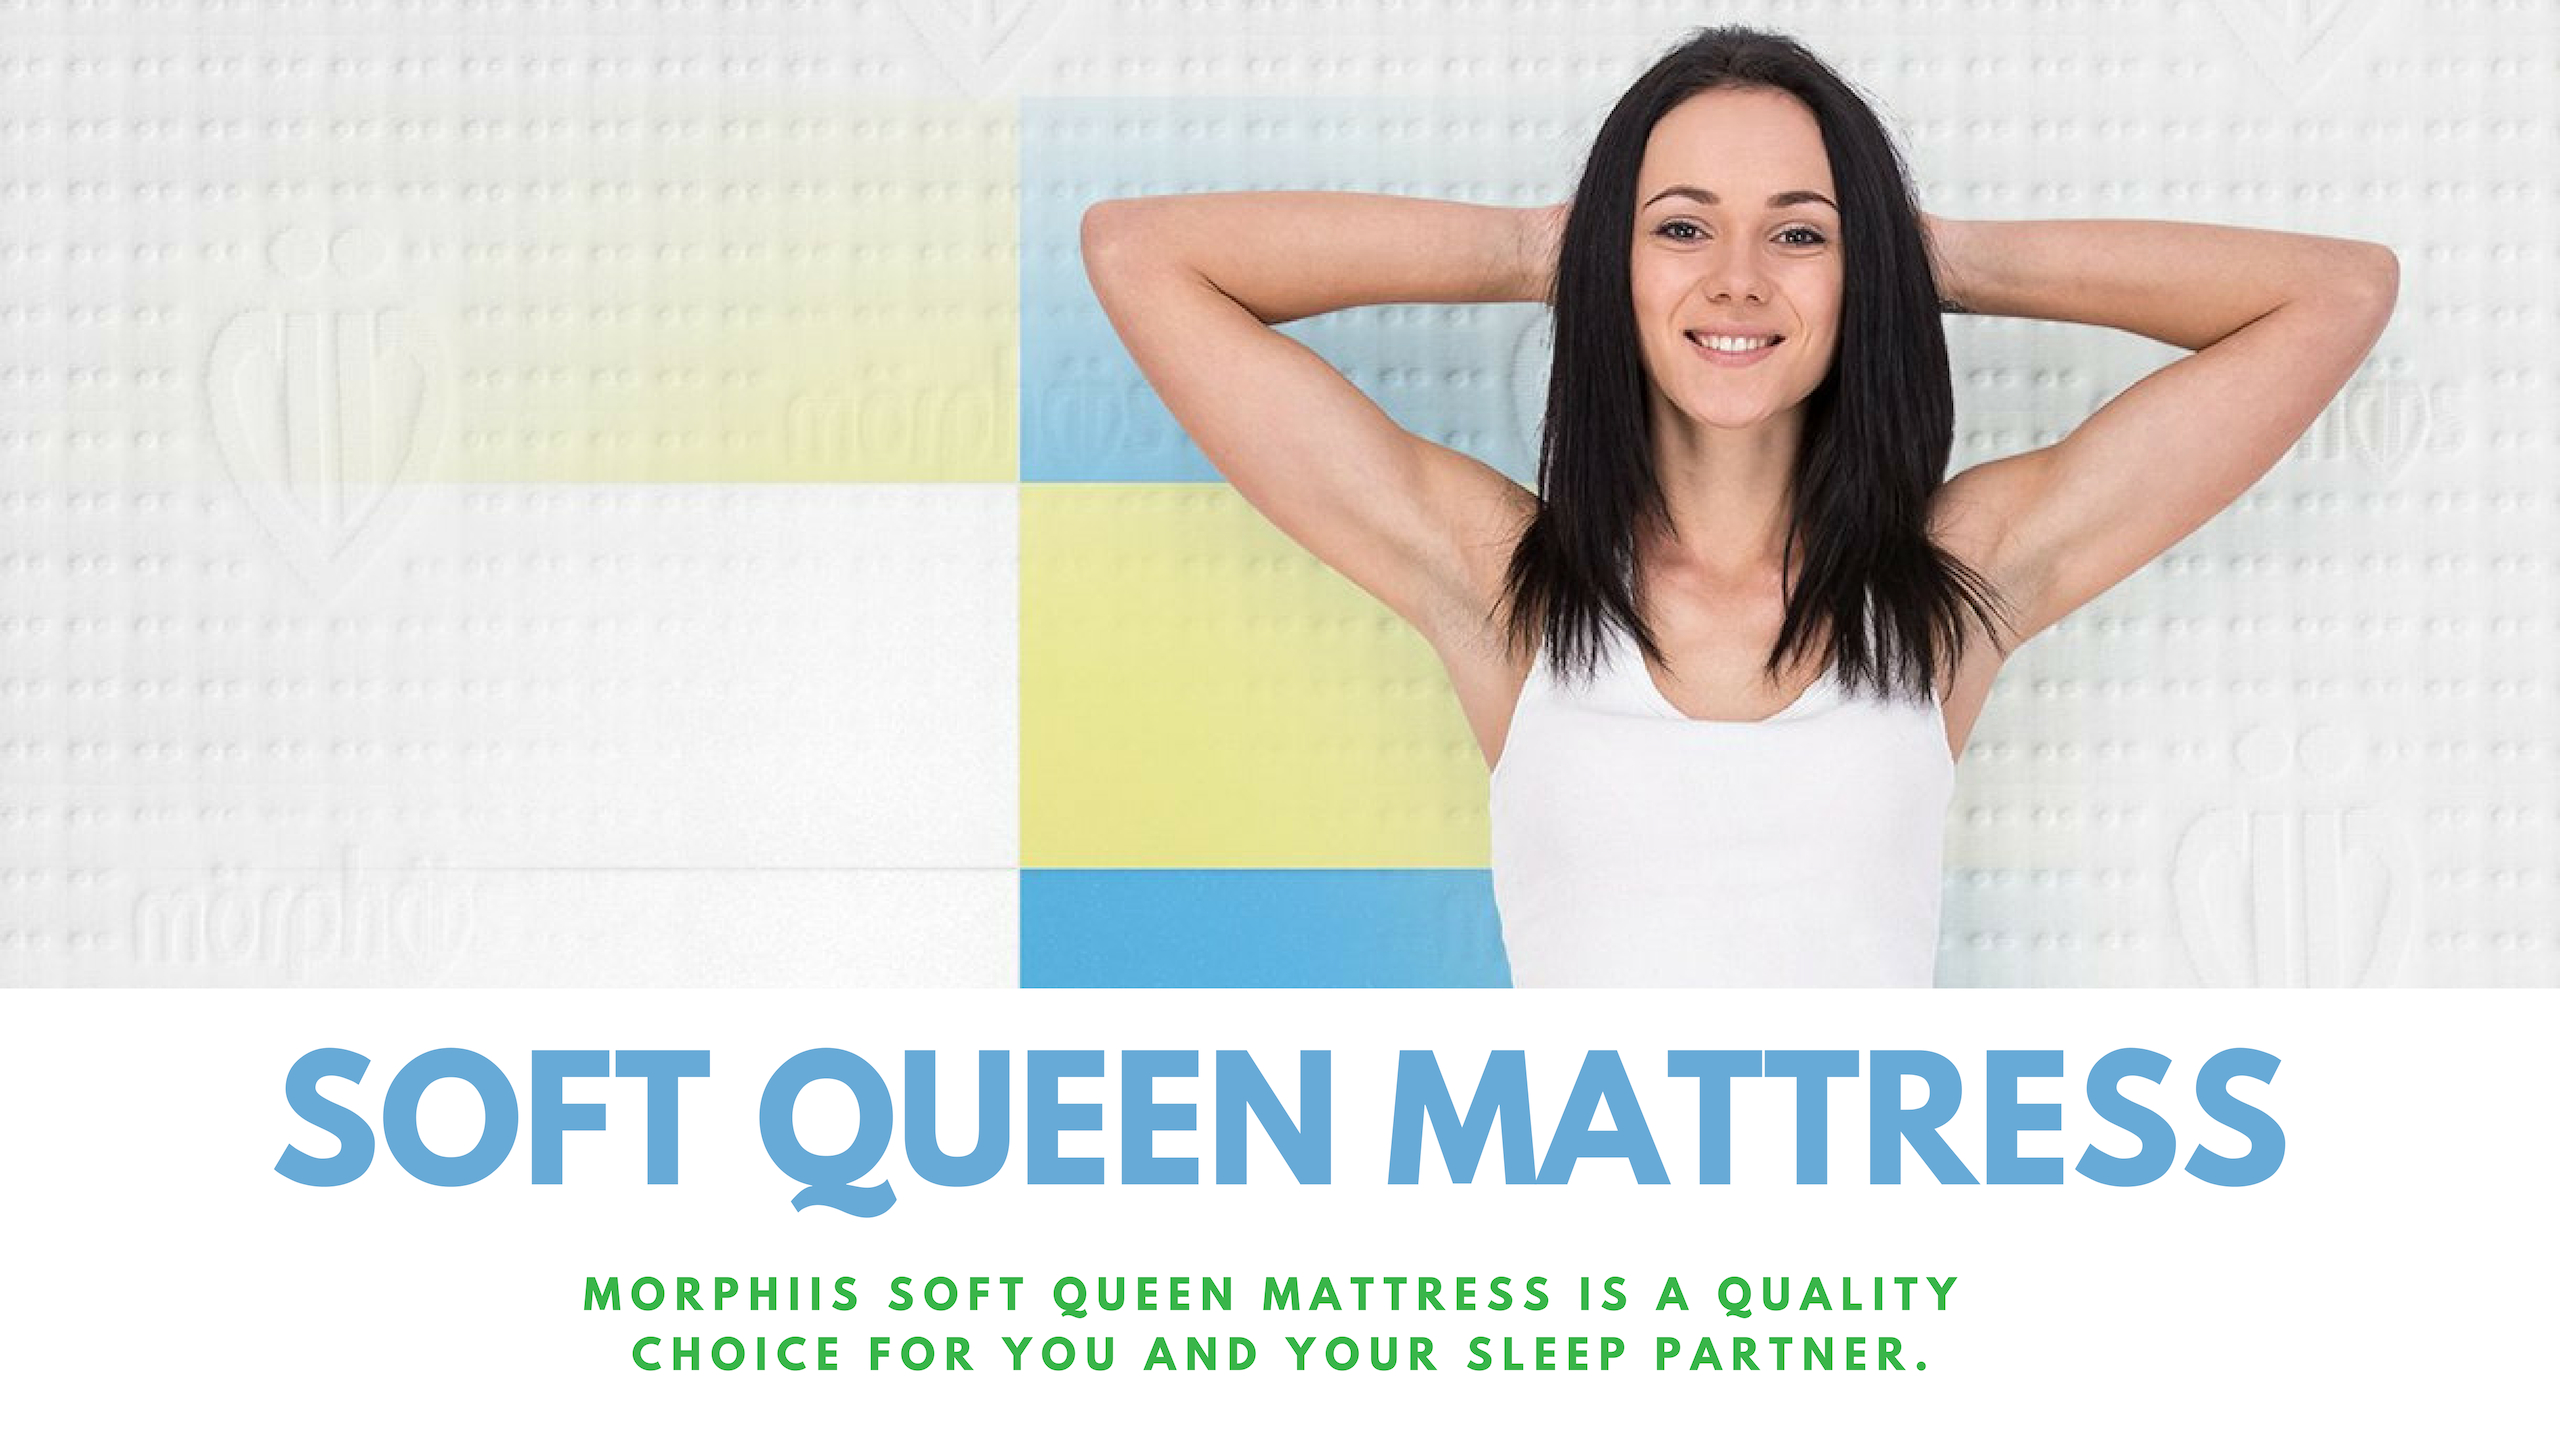 Morphiis Soft Queen Mattress